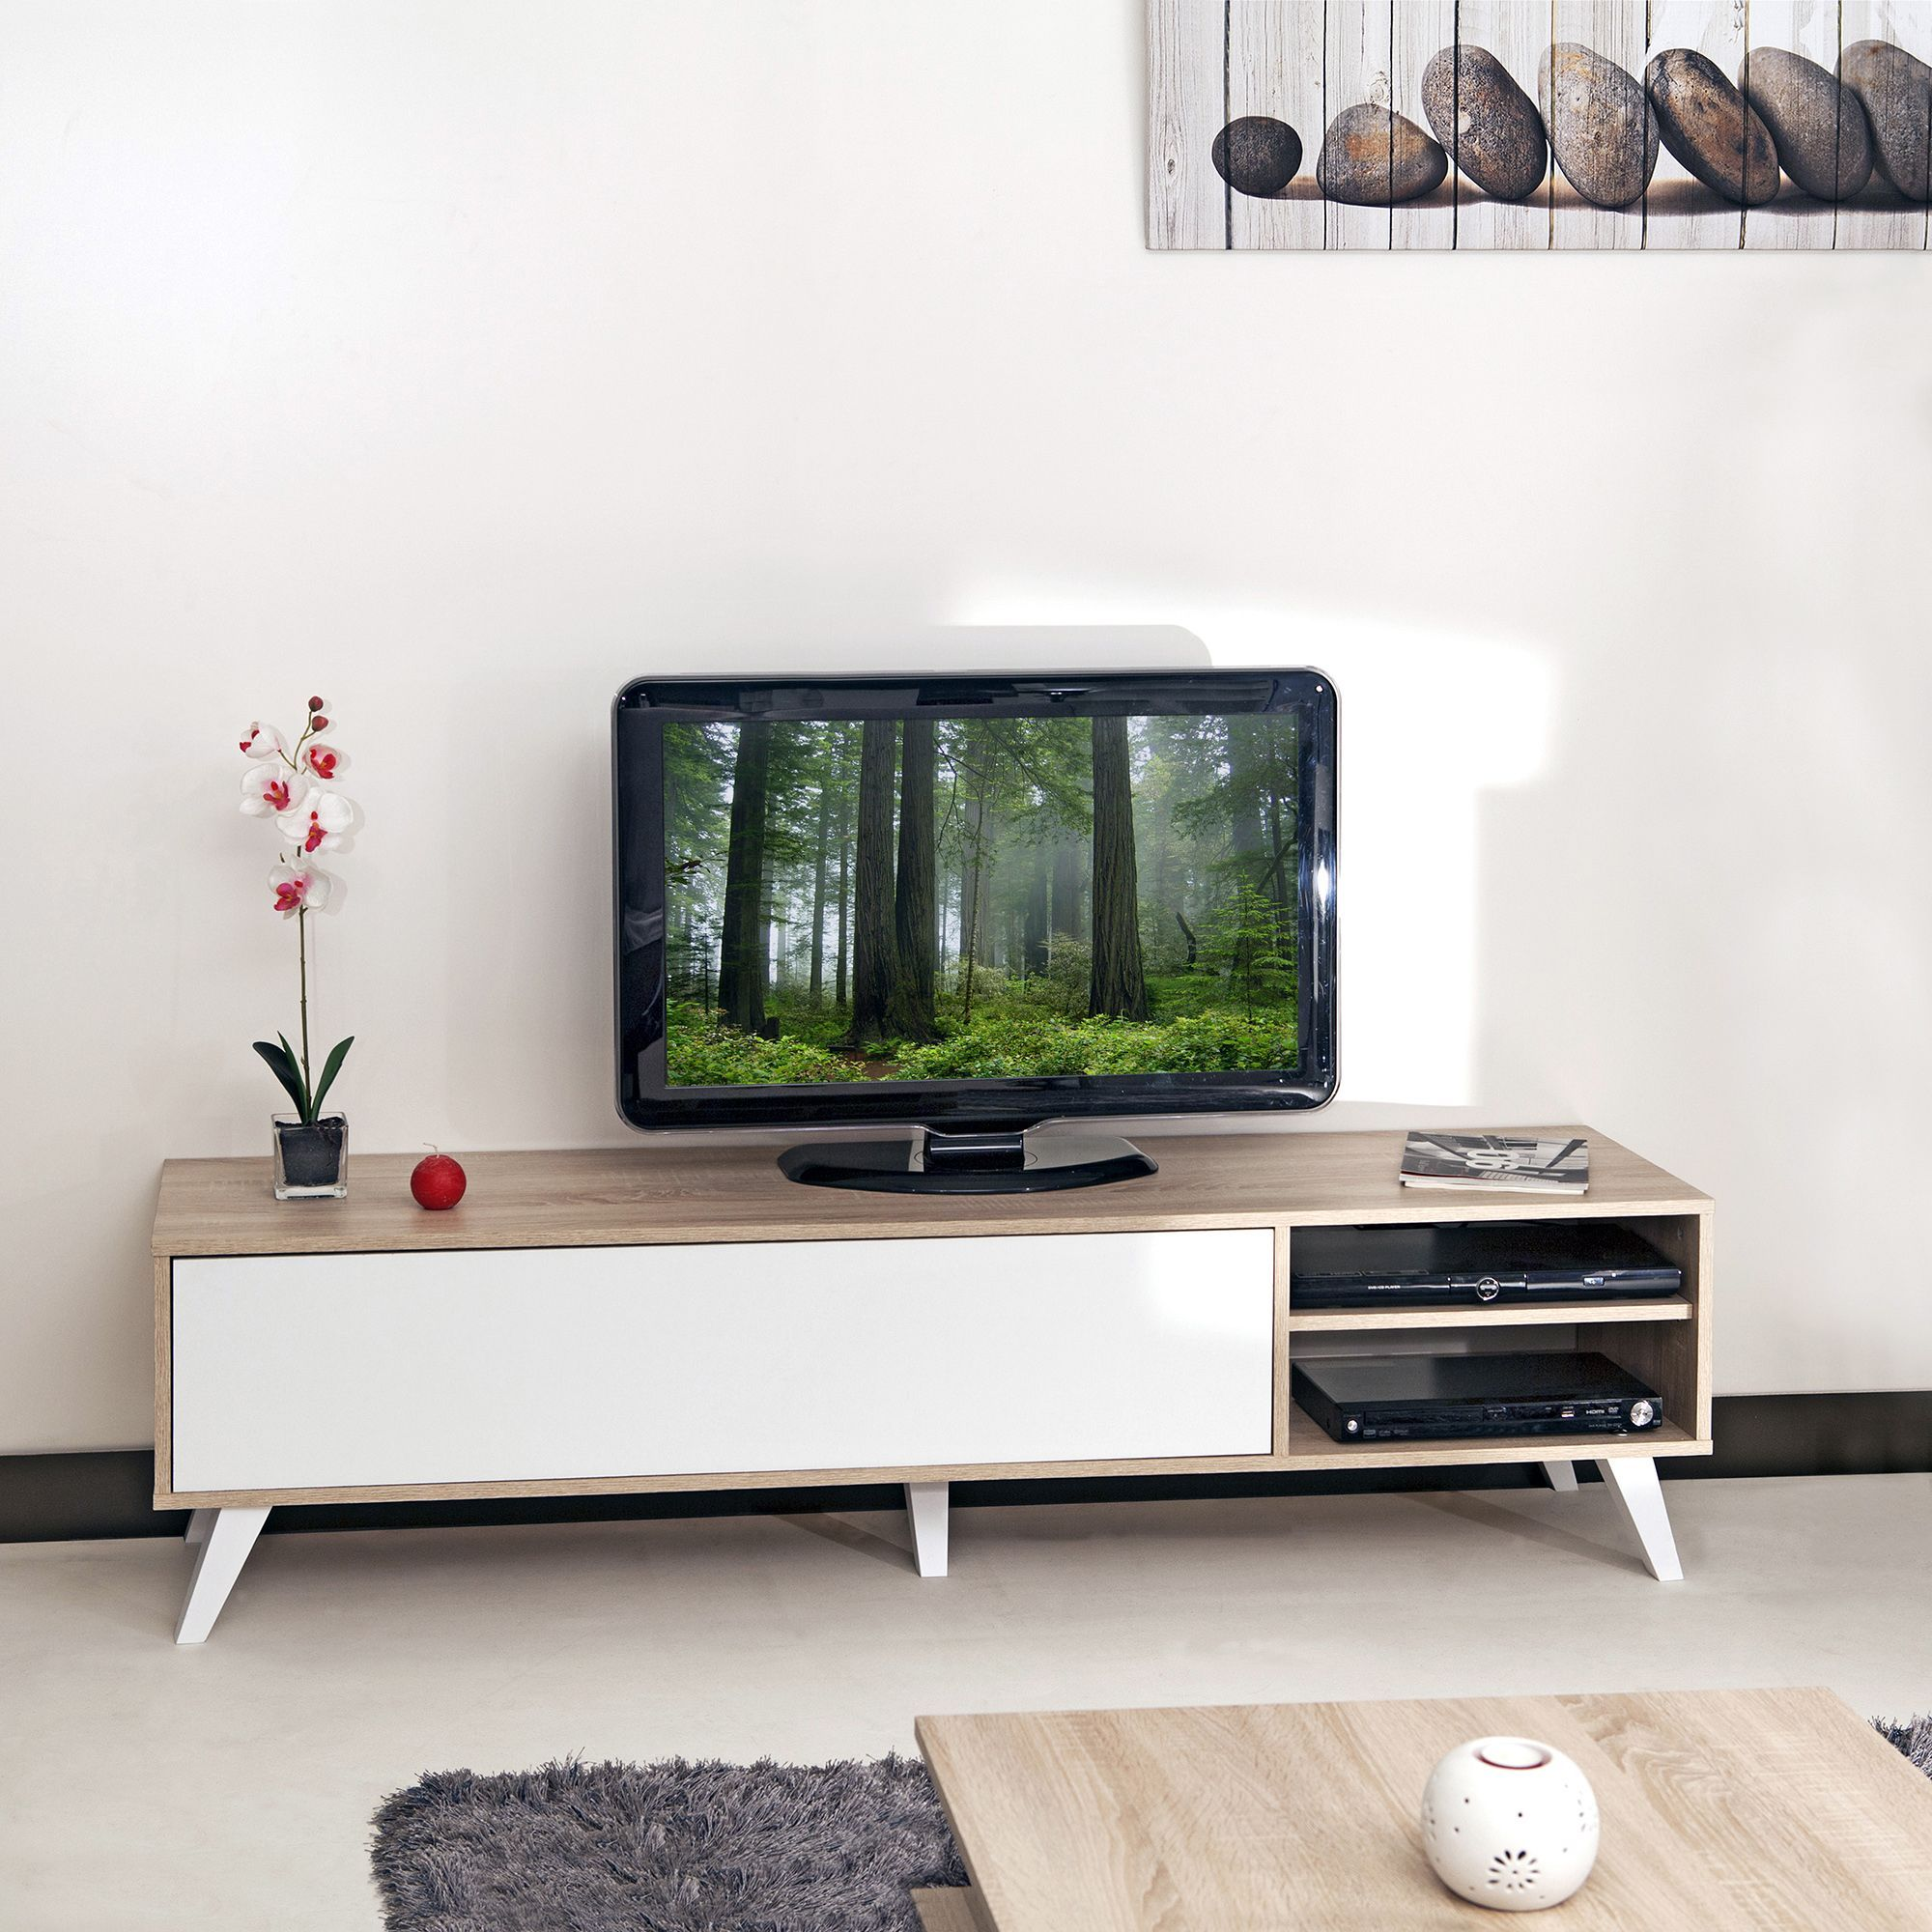 Meuble Tv Amsterdam - Sopra Tvs Salons And Bureaus[mjhdah]https://s-media-cache-ak0.pinimg.com/originals/1e/53/1b/1e531b78f81d46e7ad550c6fb644535b.jpg